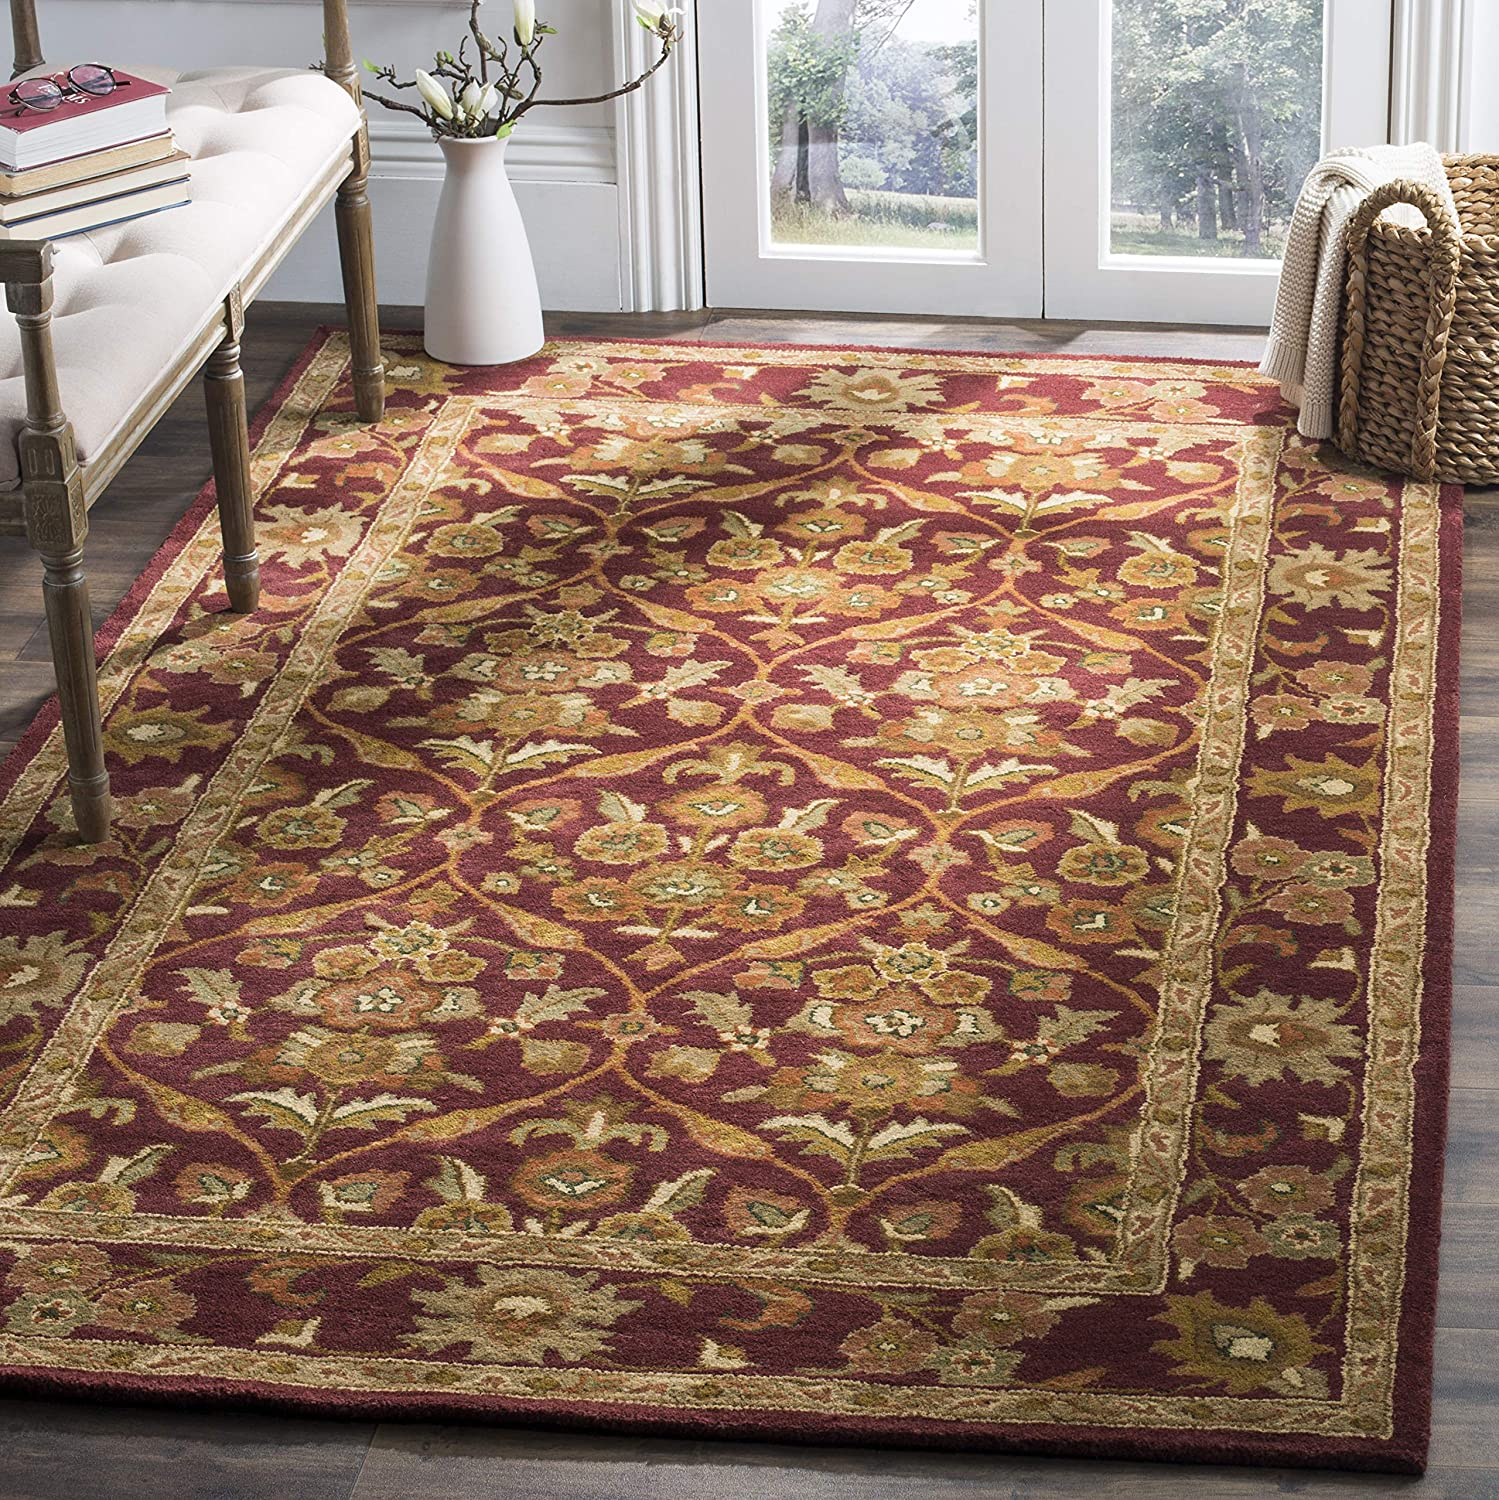 Amazon Com Safavieh Antiquity Collection At51a Handmade Traditional Oriental Premium Wool Area Rug 5 X 8 Wine Gold Furniture Decor